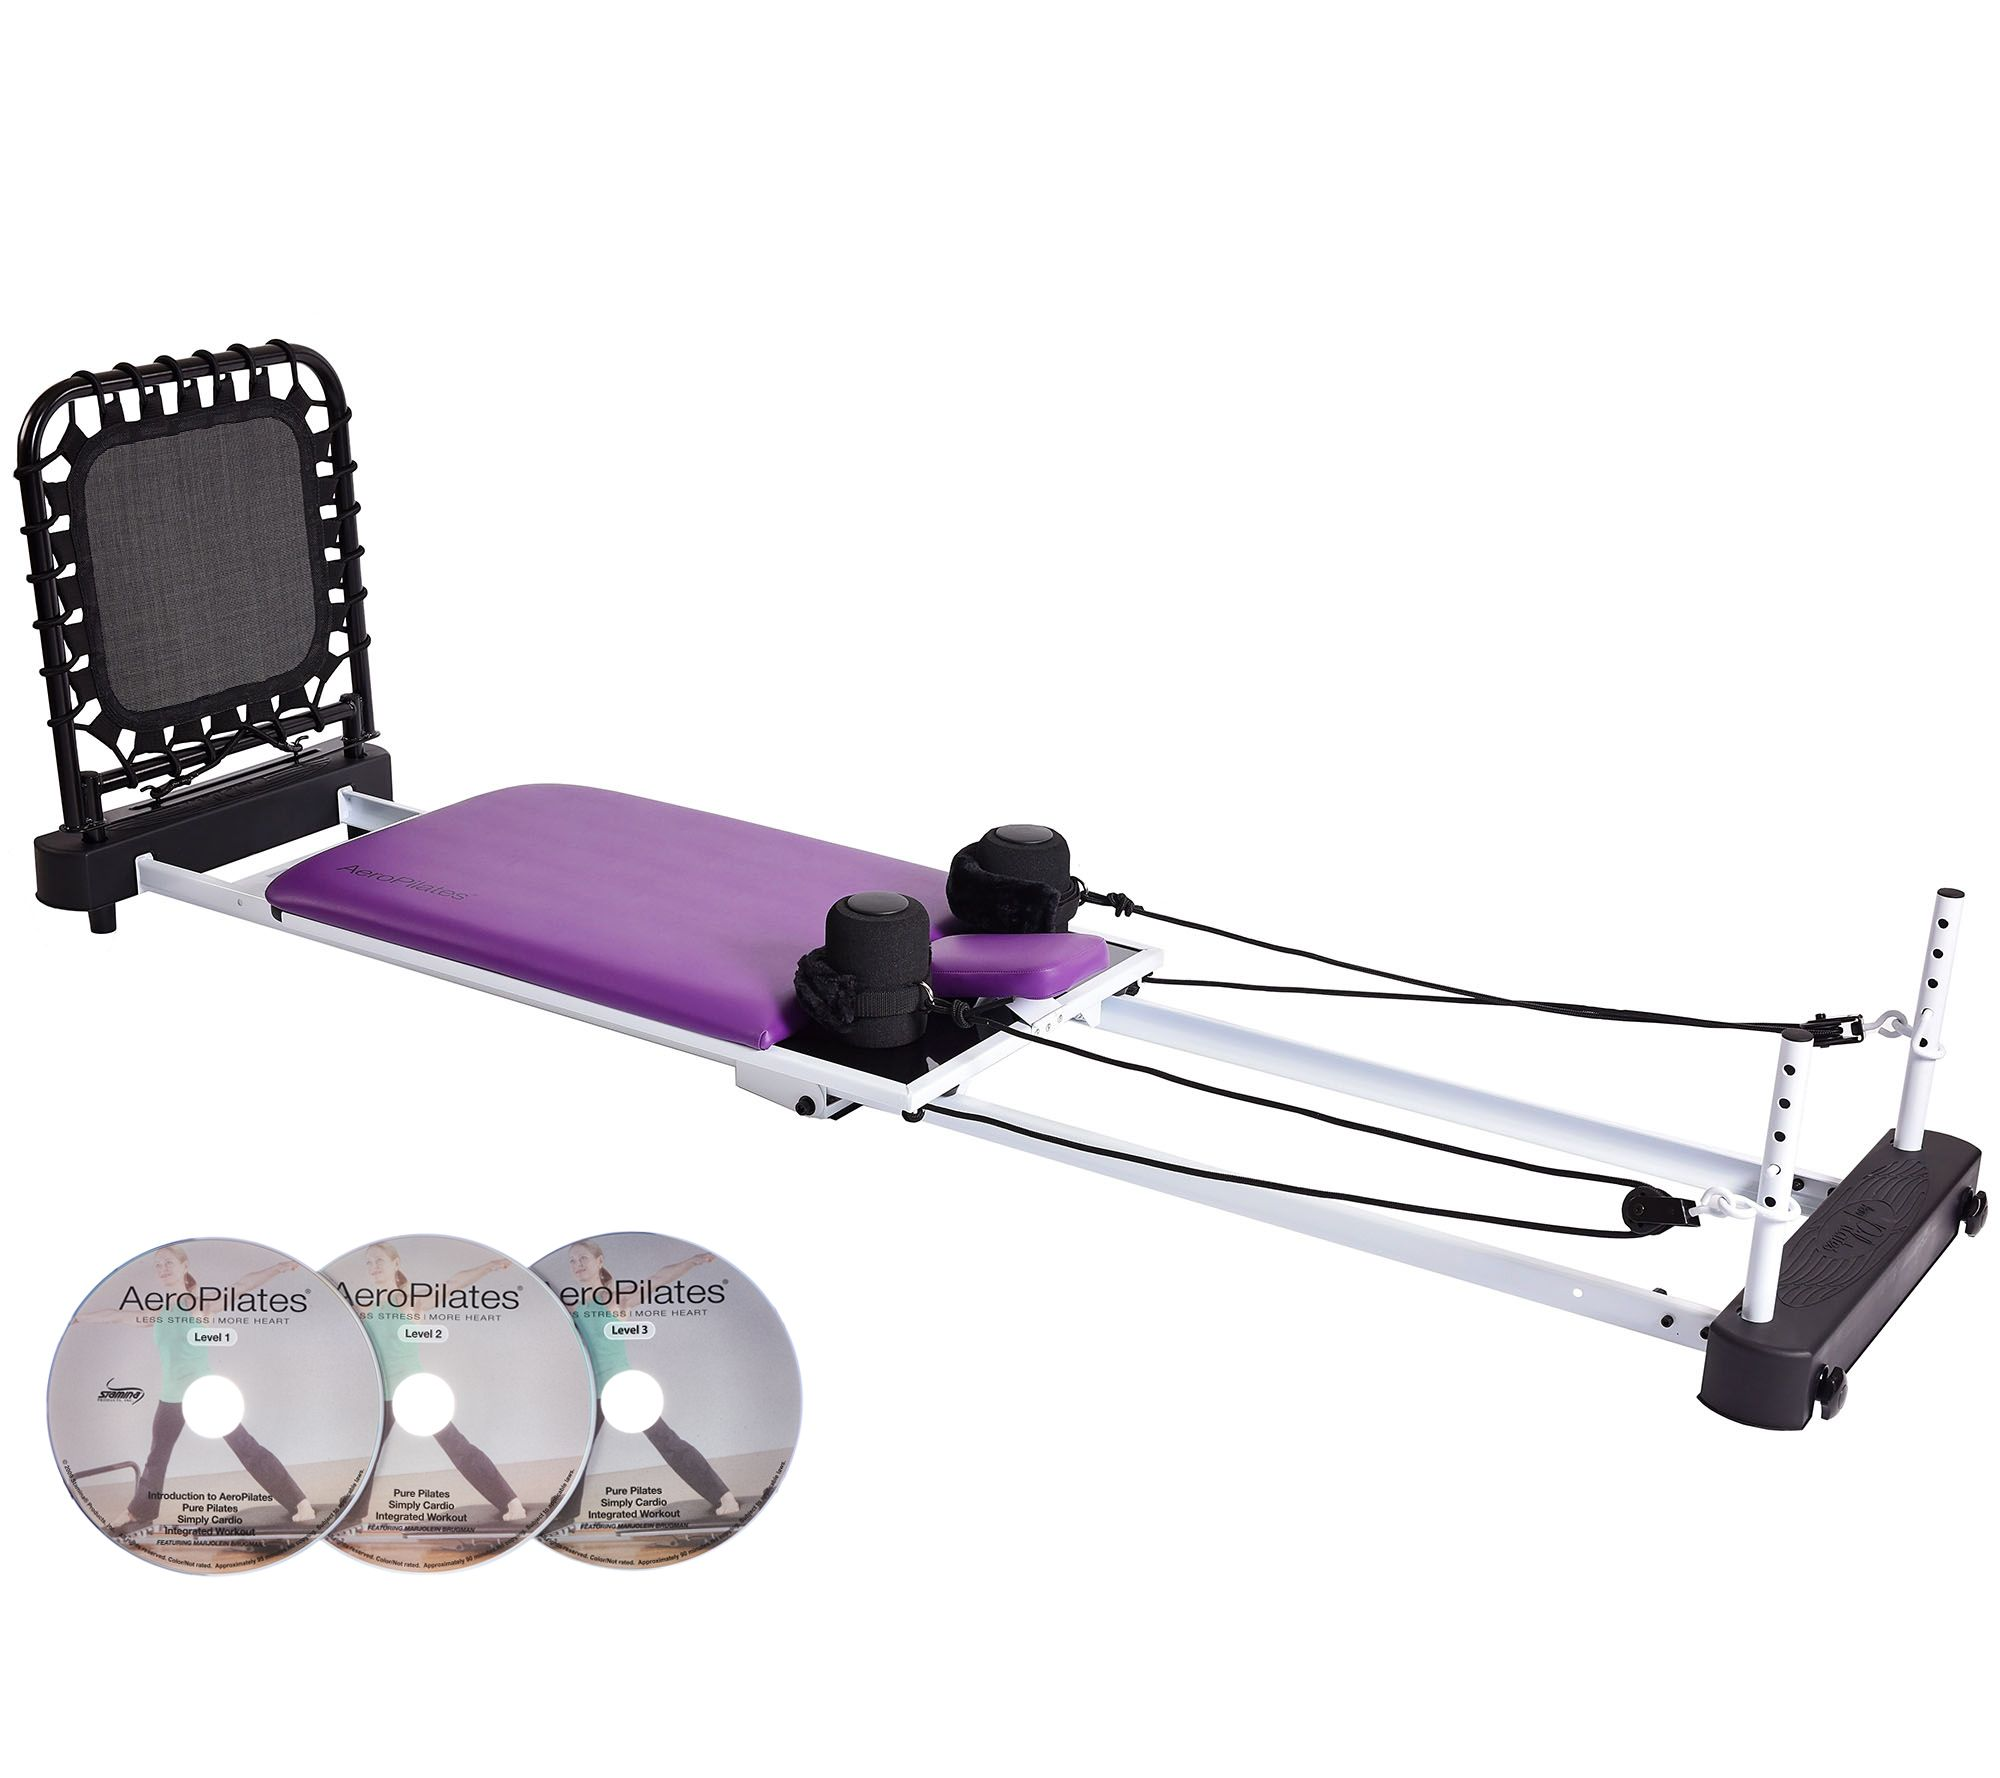 AeroPilates Reformer 5-Cord w/ Rebounder, Pulley Risers & 3 DVDs - F12051